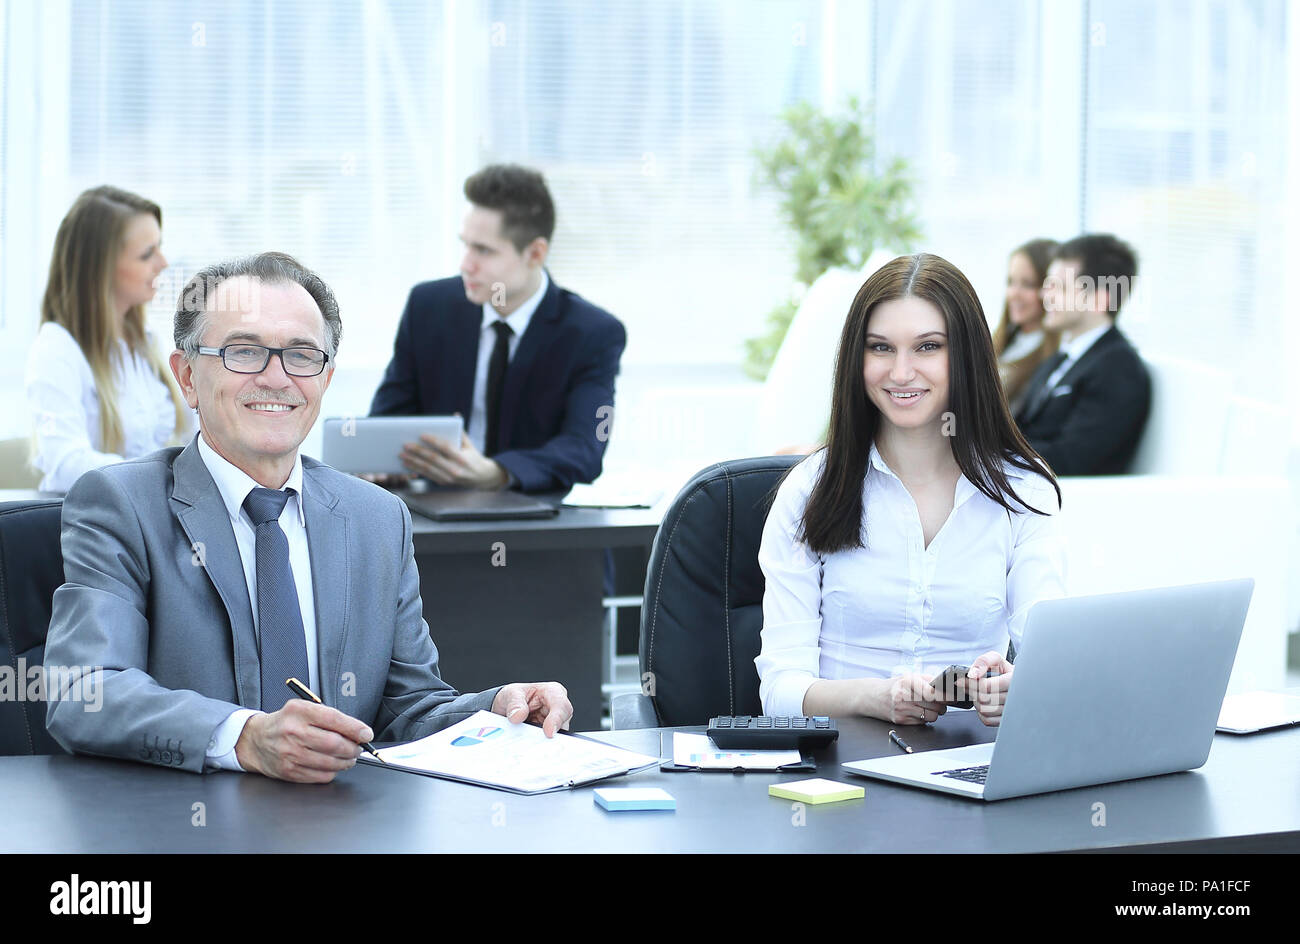 businessman and business team at the workplace - Stock Image